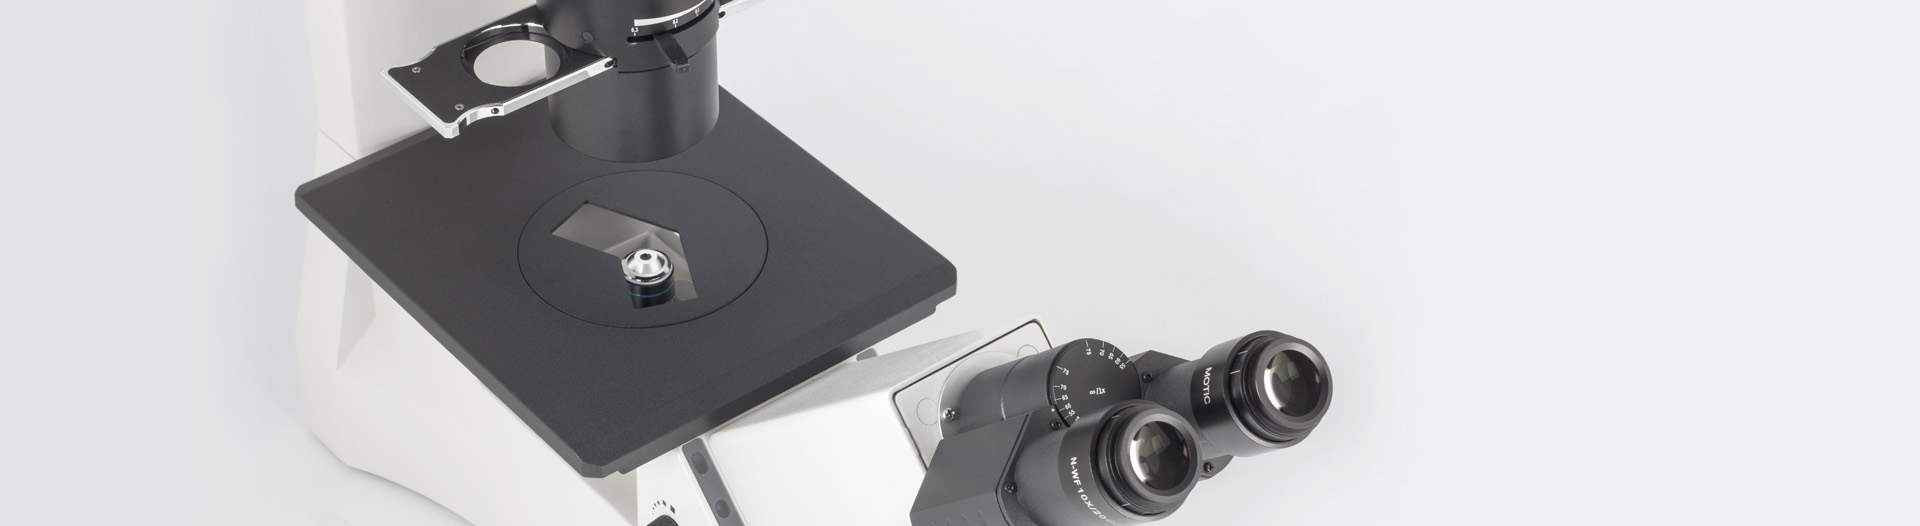 AE2000 inverted microscope stage